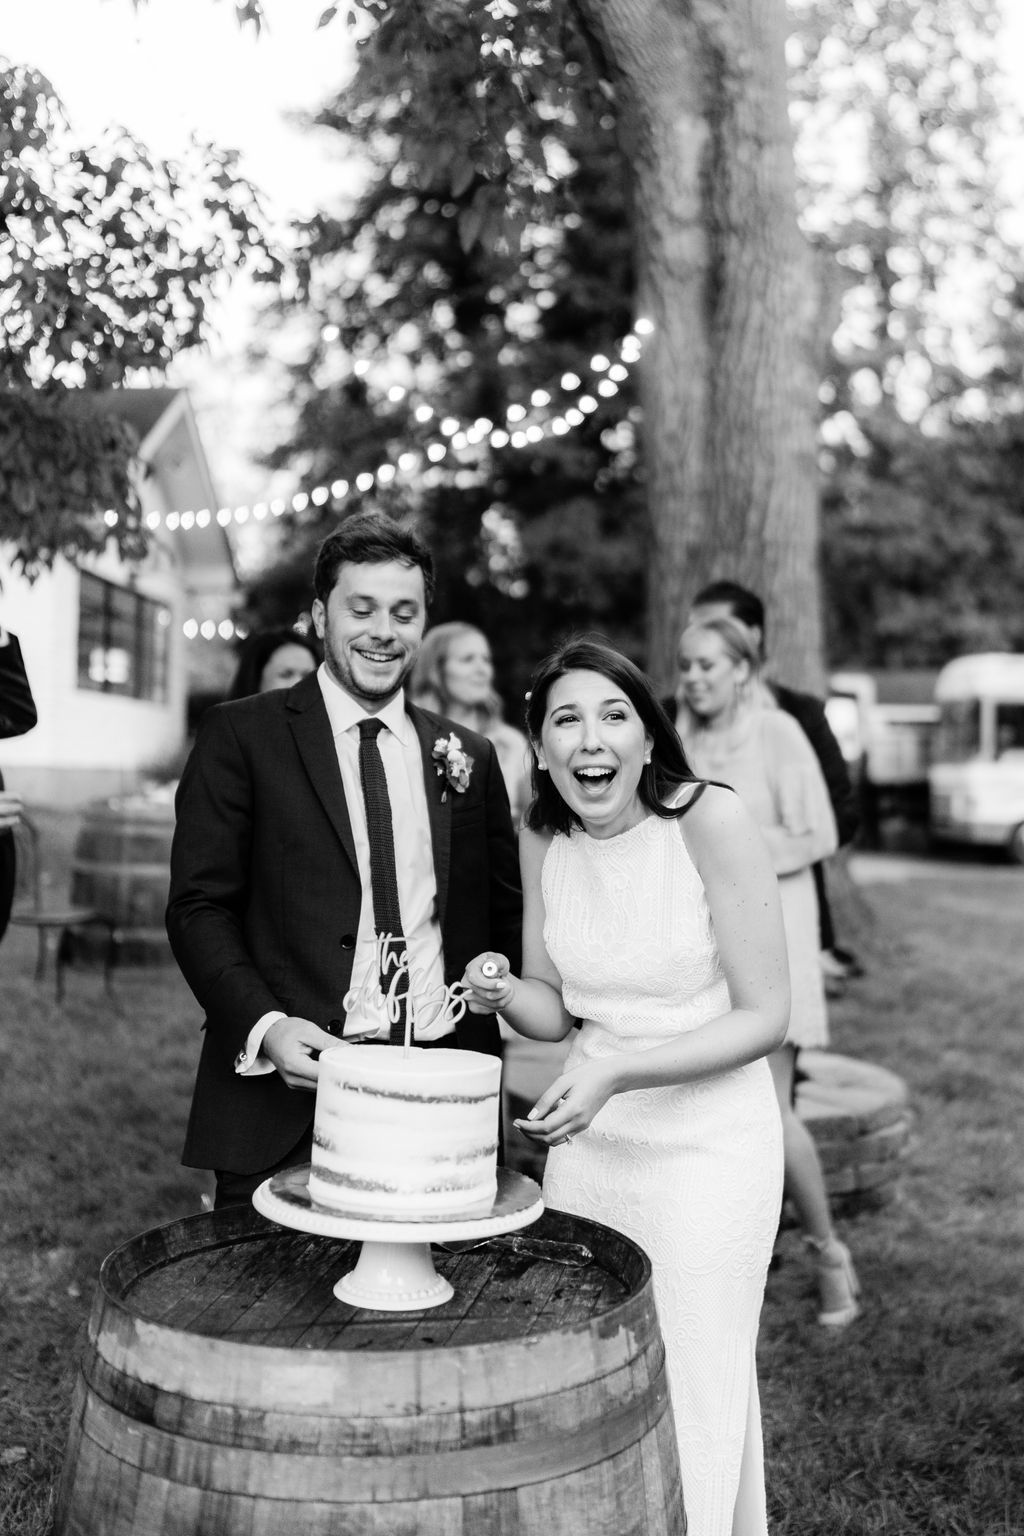 bride and groom smiling during cake cutting outside